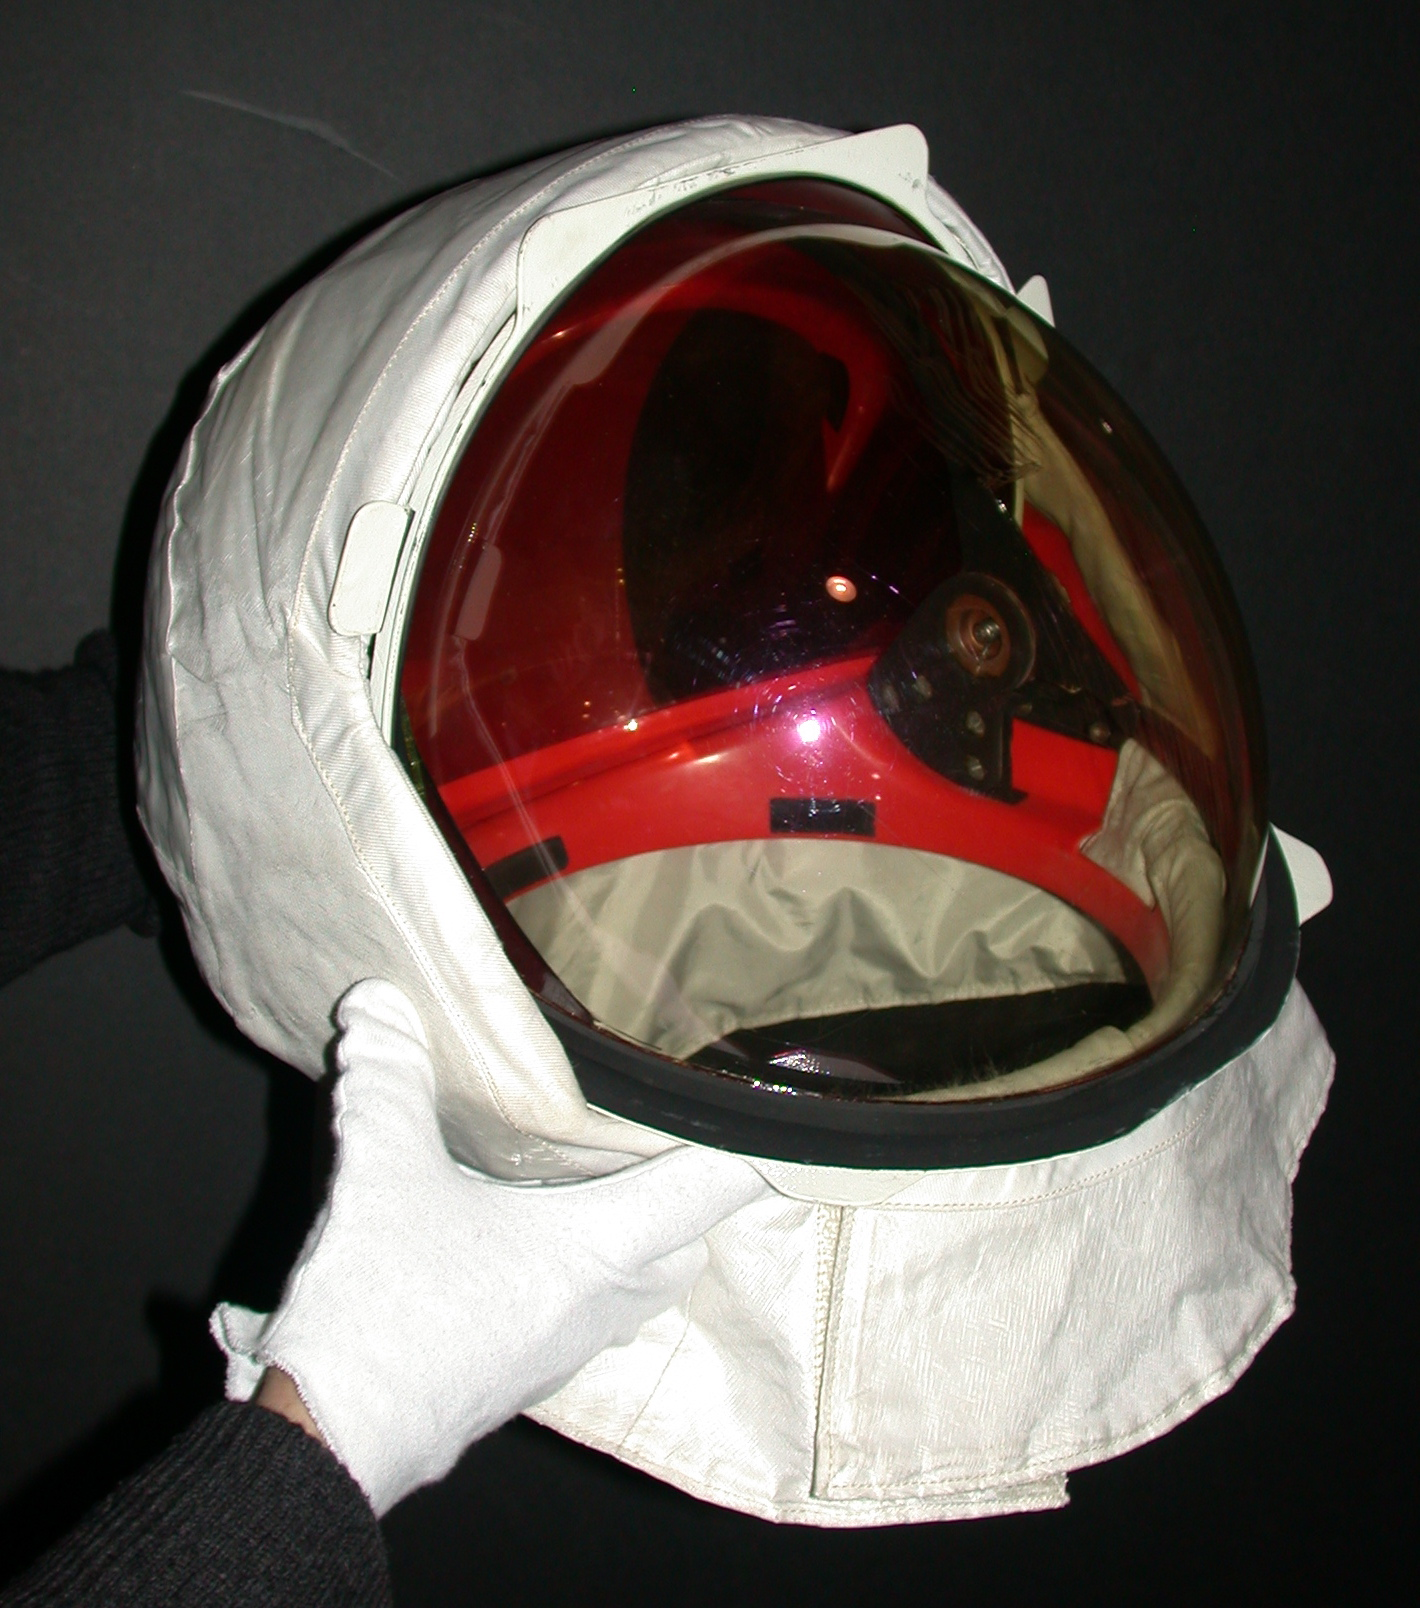 neil armstrong backpack - photo #40